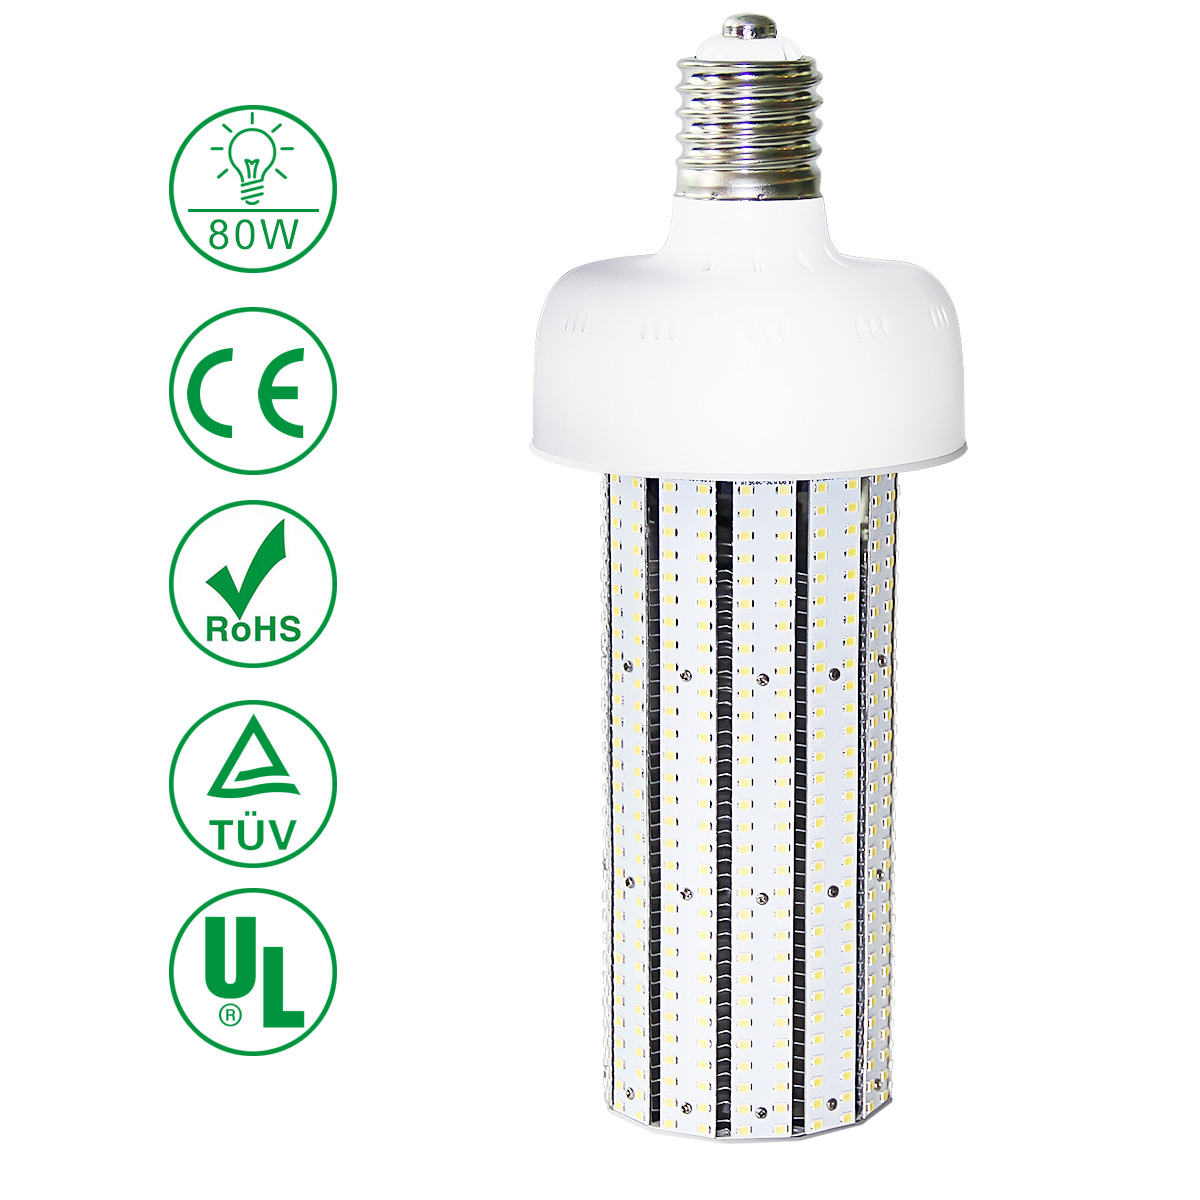 KAWELL 80W LED Corn Light Bulb, E39 Large Mogul Base LED Street and Area Light, for Fixtures HID/HPS/Metal Halide or CFL, 9600 lumen 5000K (Crystal White Glow) UL Listed TUV-Qualified DLC Certified